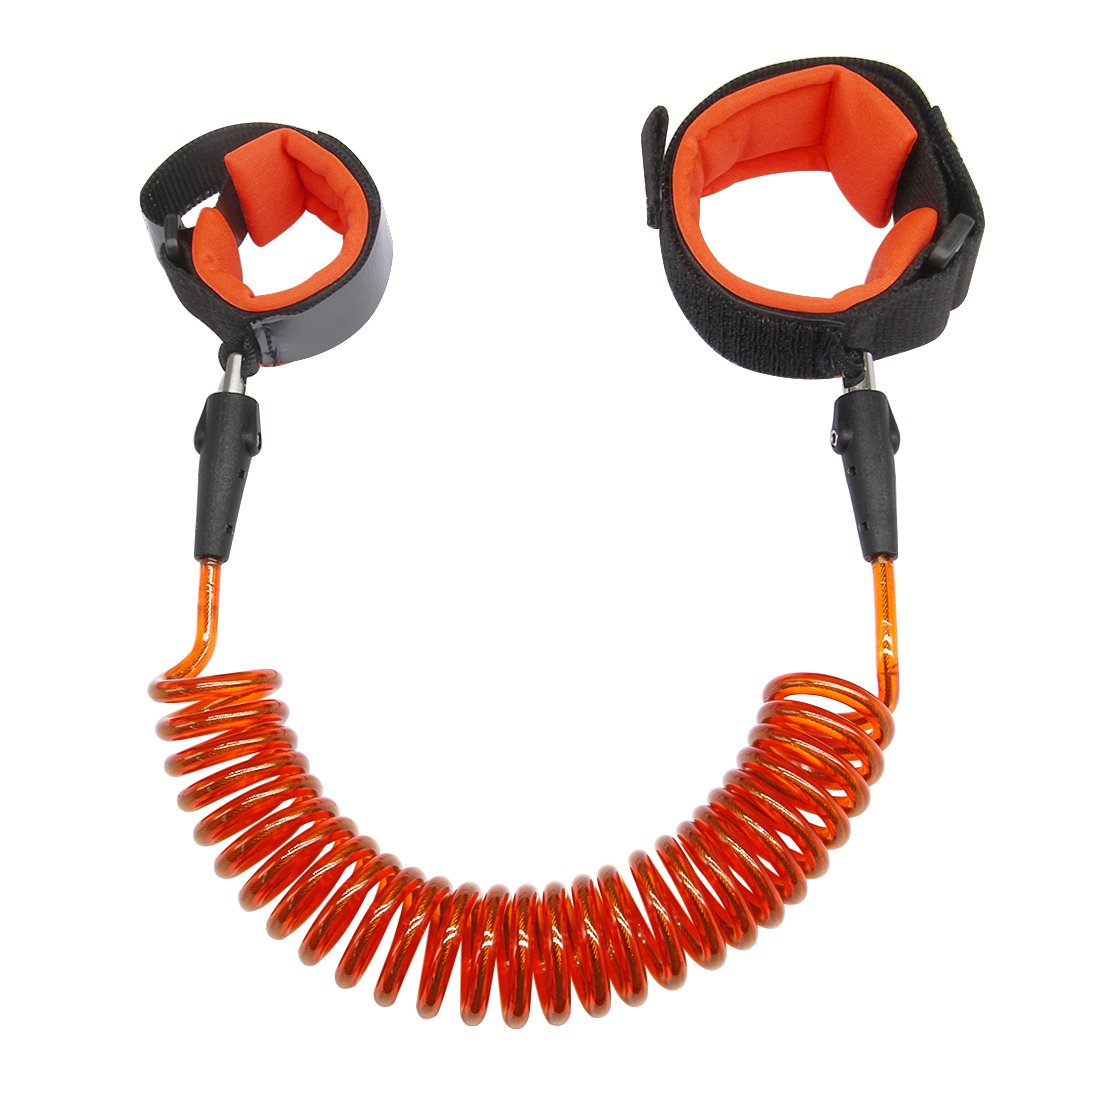 Anti Lost Wrist Link 2.5M Safety Wrist Link for Toddlers, Children & Kids (Orange) by Blisstime